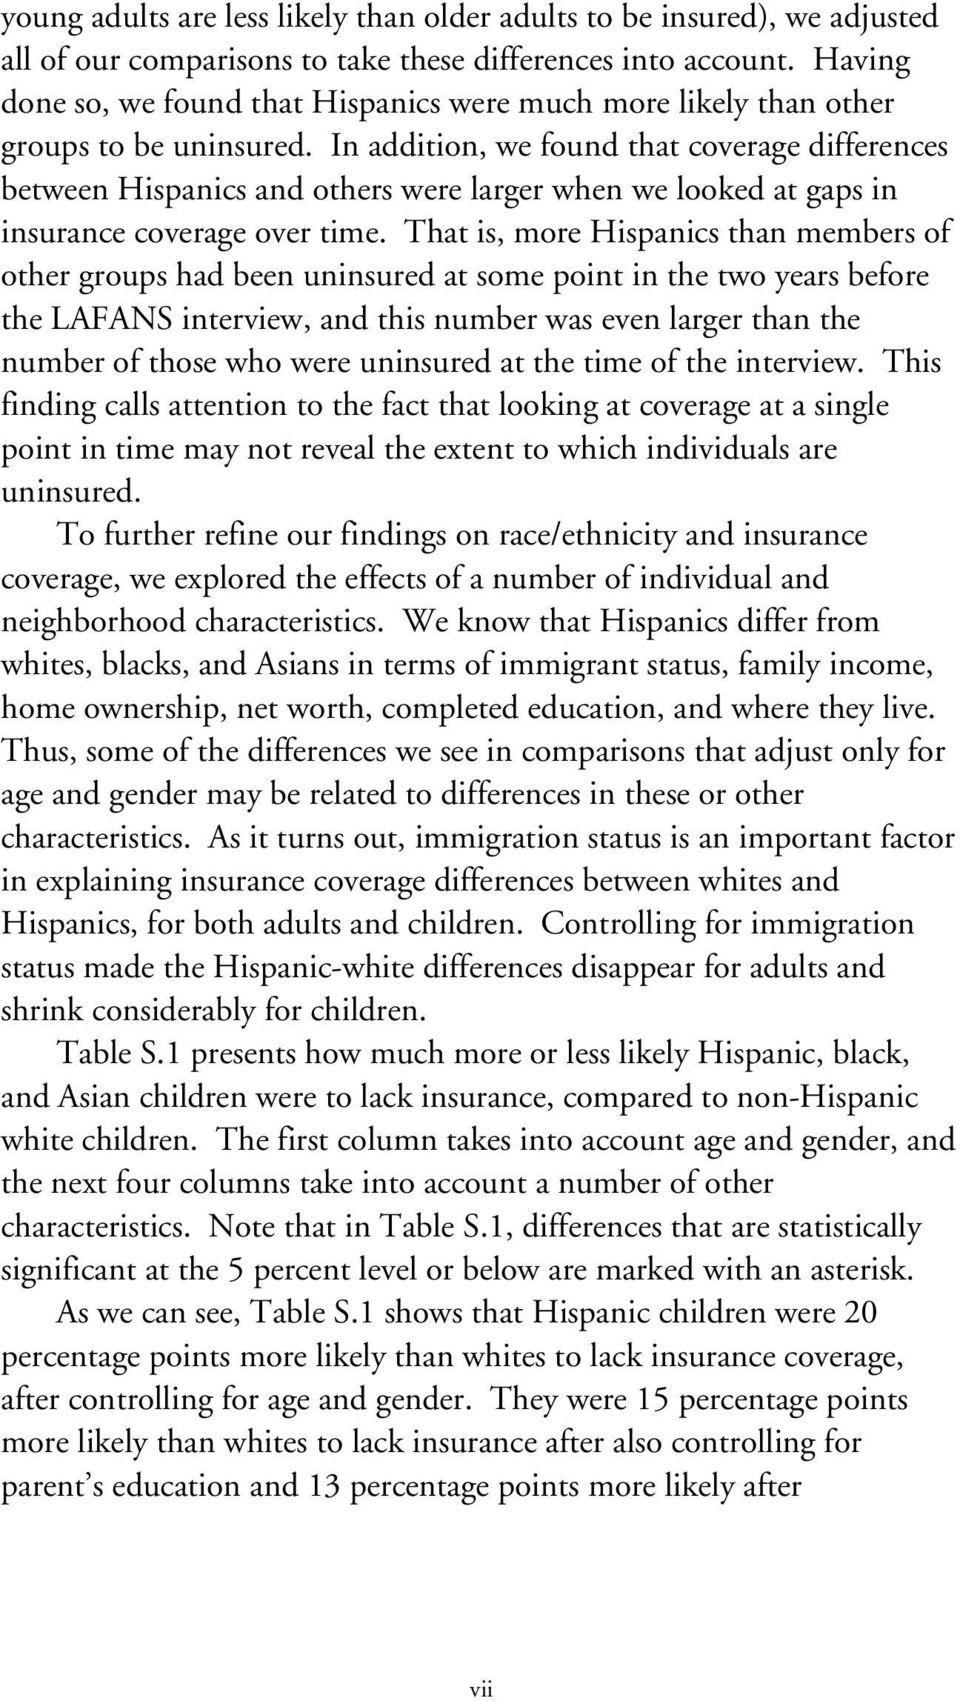 In addition, we found that coverage differences between Hispanics and others were larger when we looked at gaps in insurance coverage over time.